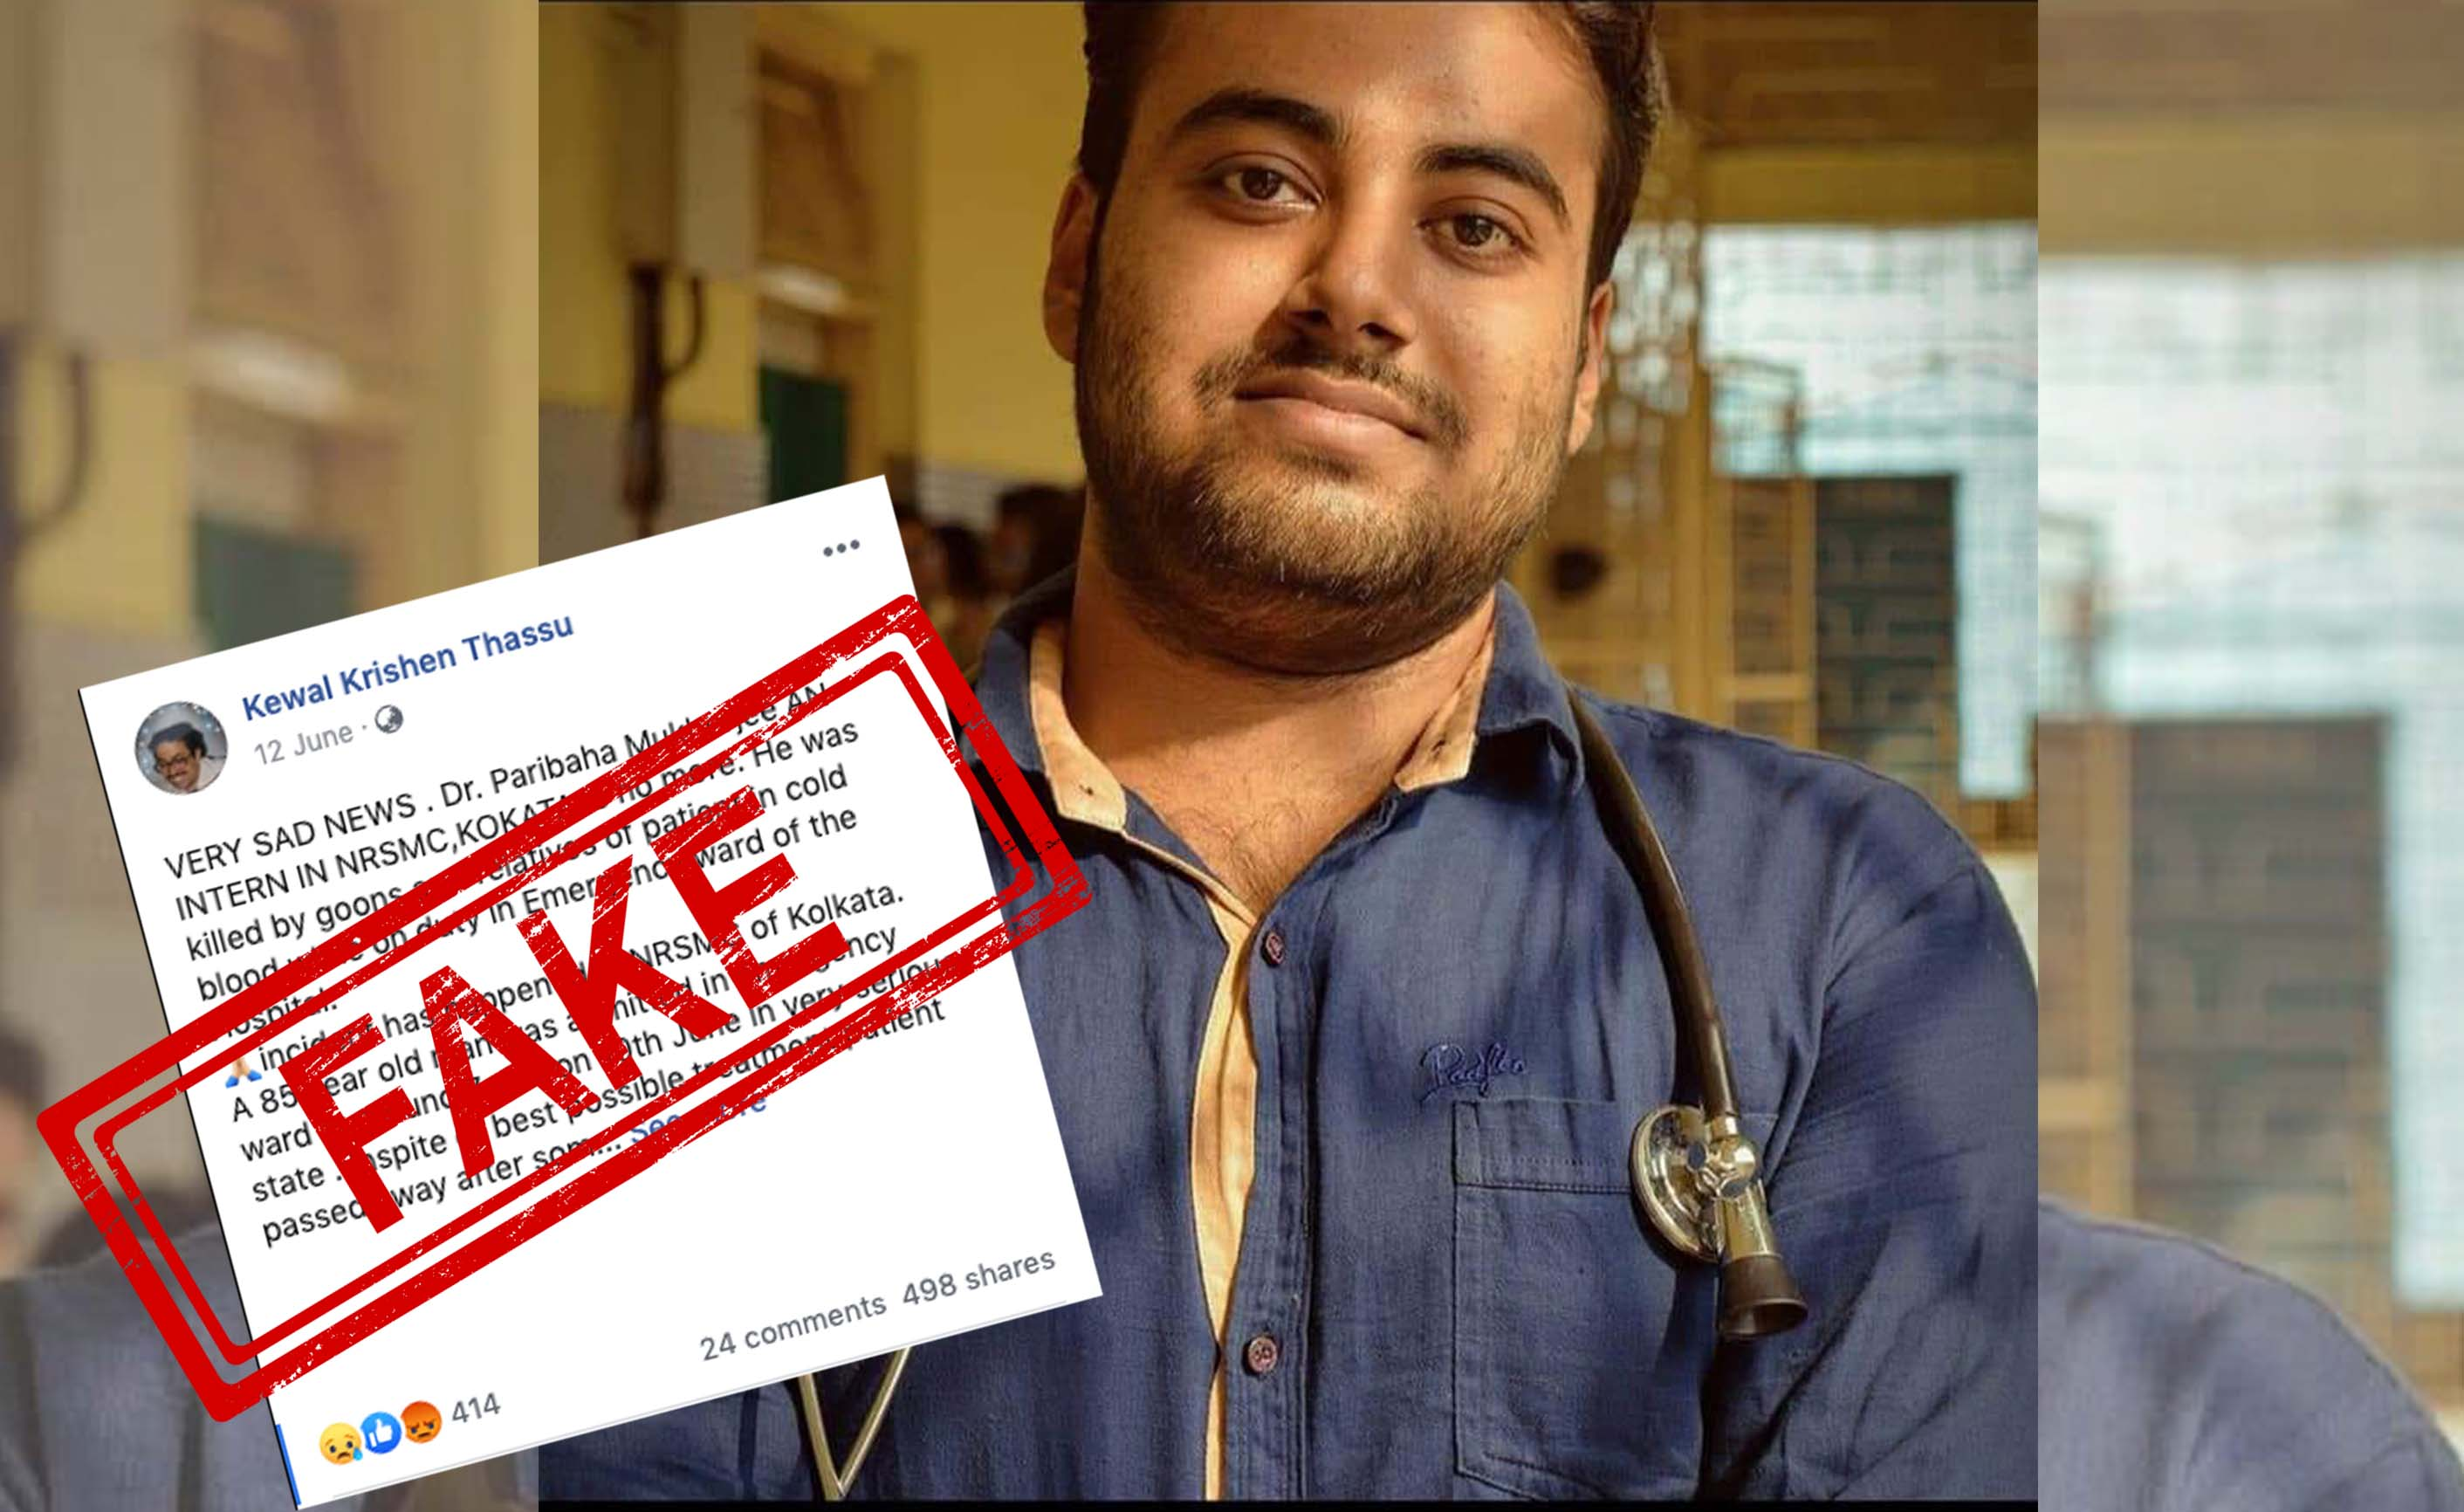 Dr Paribaha Mukherjee, NRSM, COLLEGE, HOSPITAL, Doctor, Assult, Patient, NewsMobile, Fact Check, Fact Checker, Fake, News, India